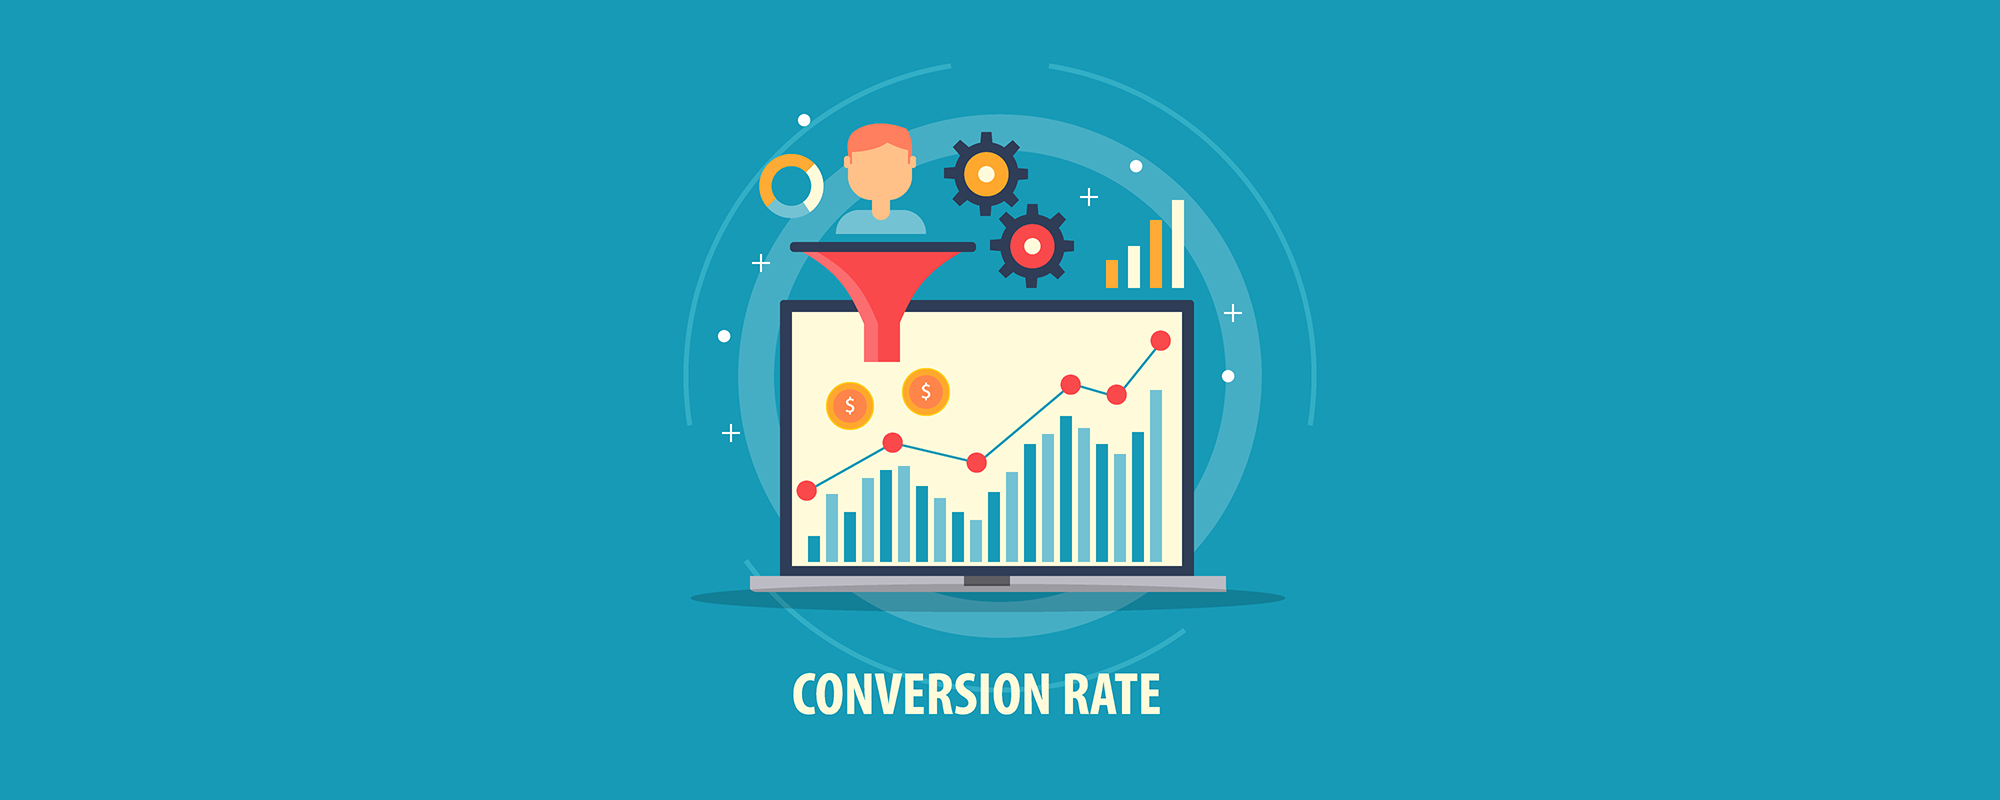 conversion-rate-content-hero